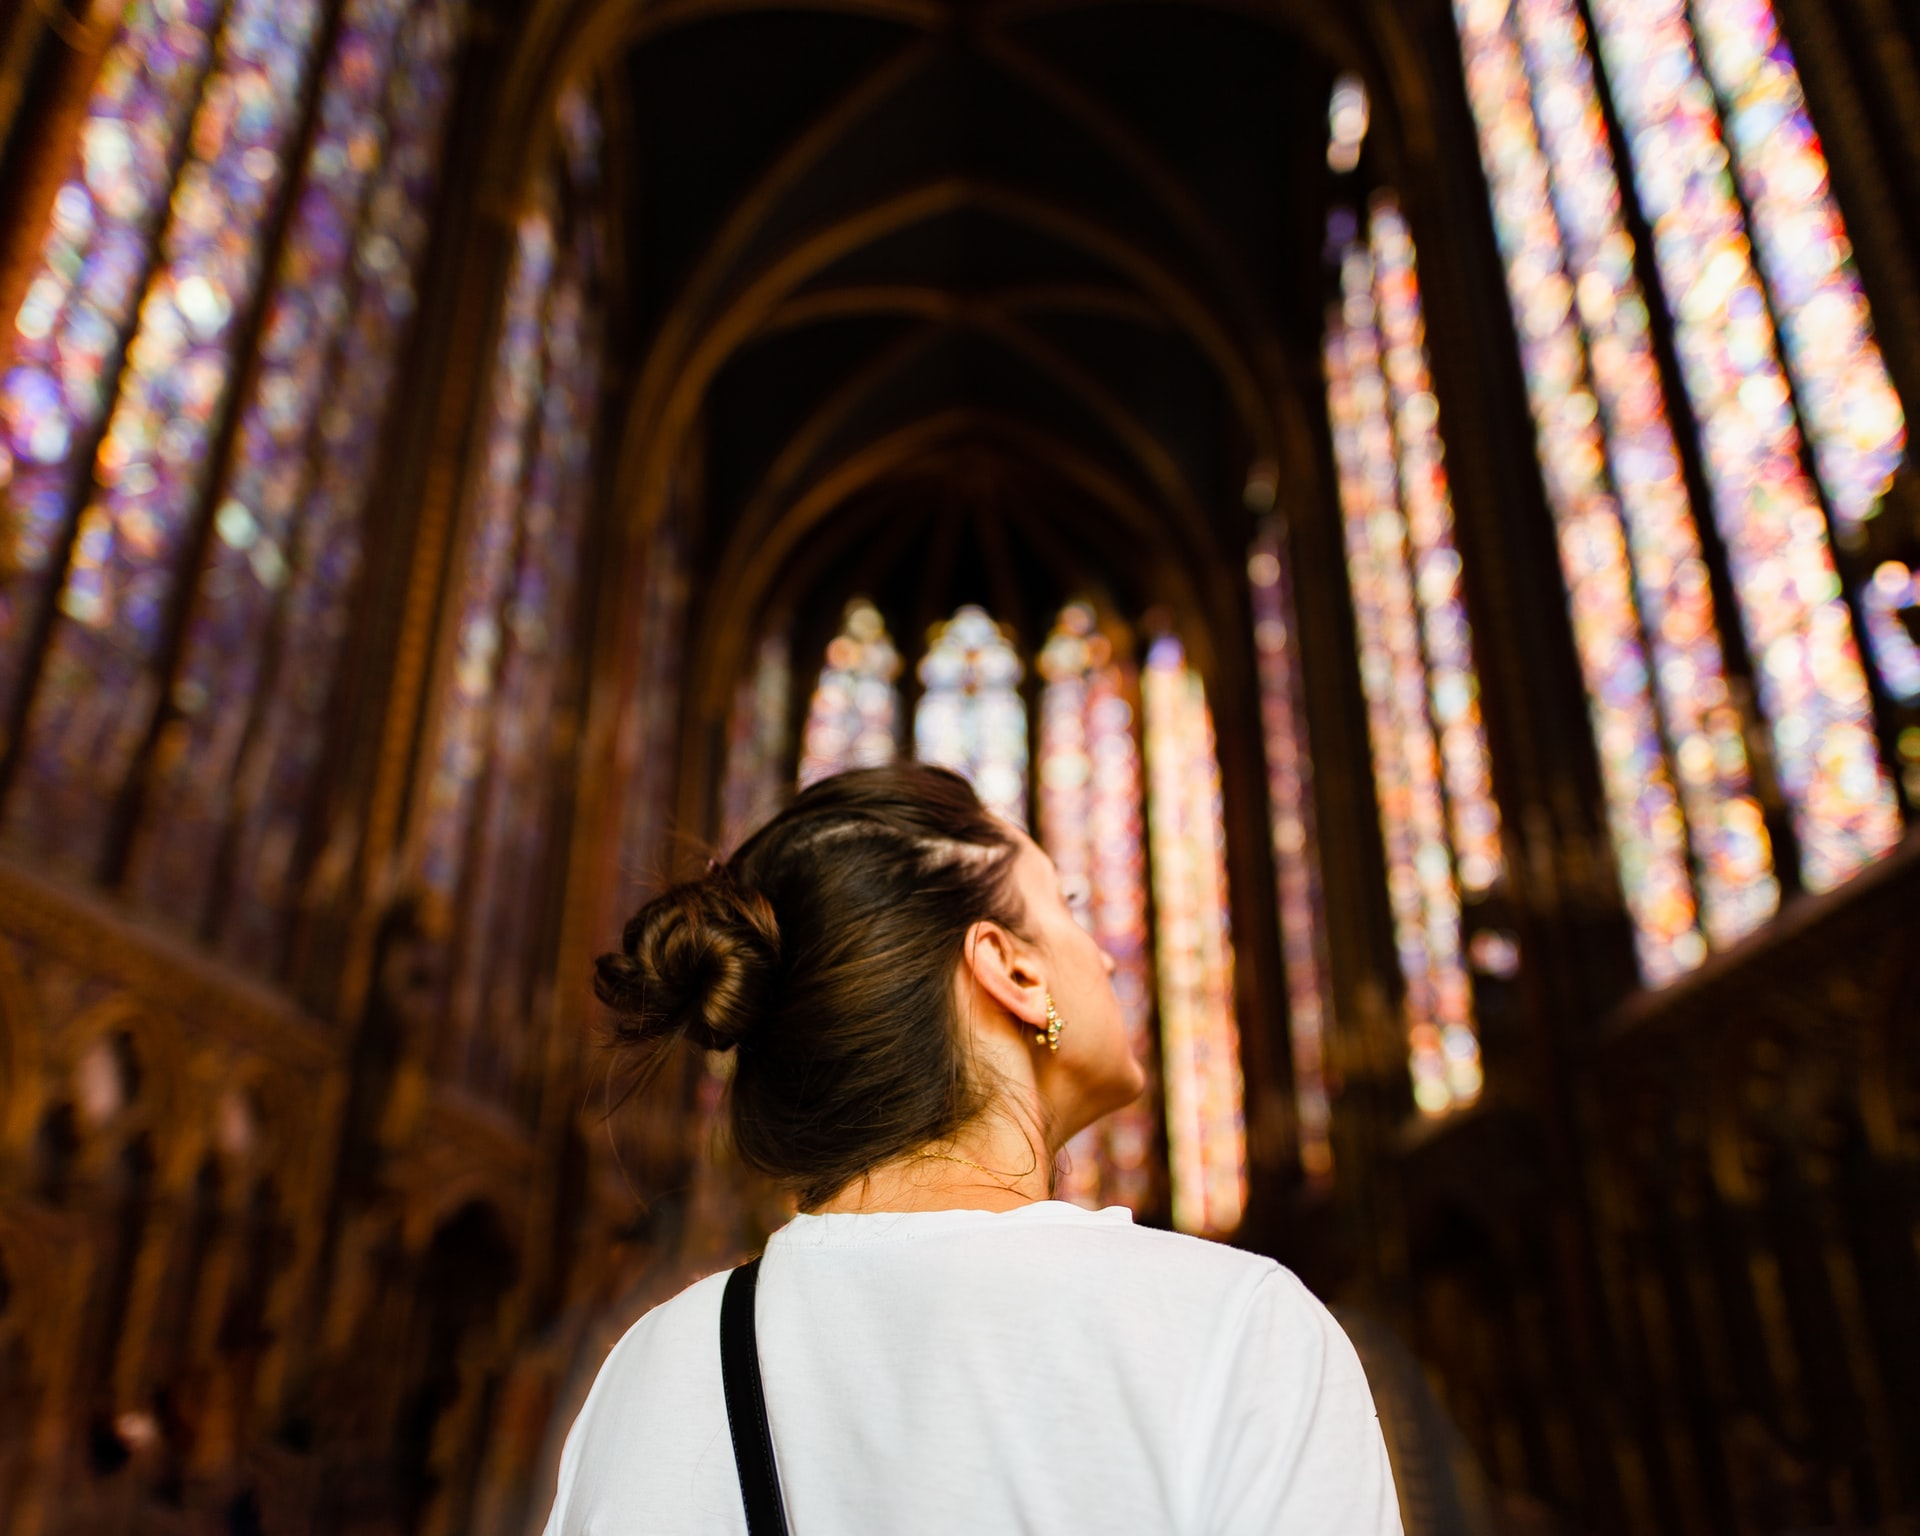 Paris traveler looking at scenes depicted on the stained glass in Sainte-Chapelle